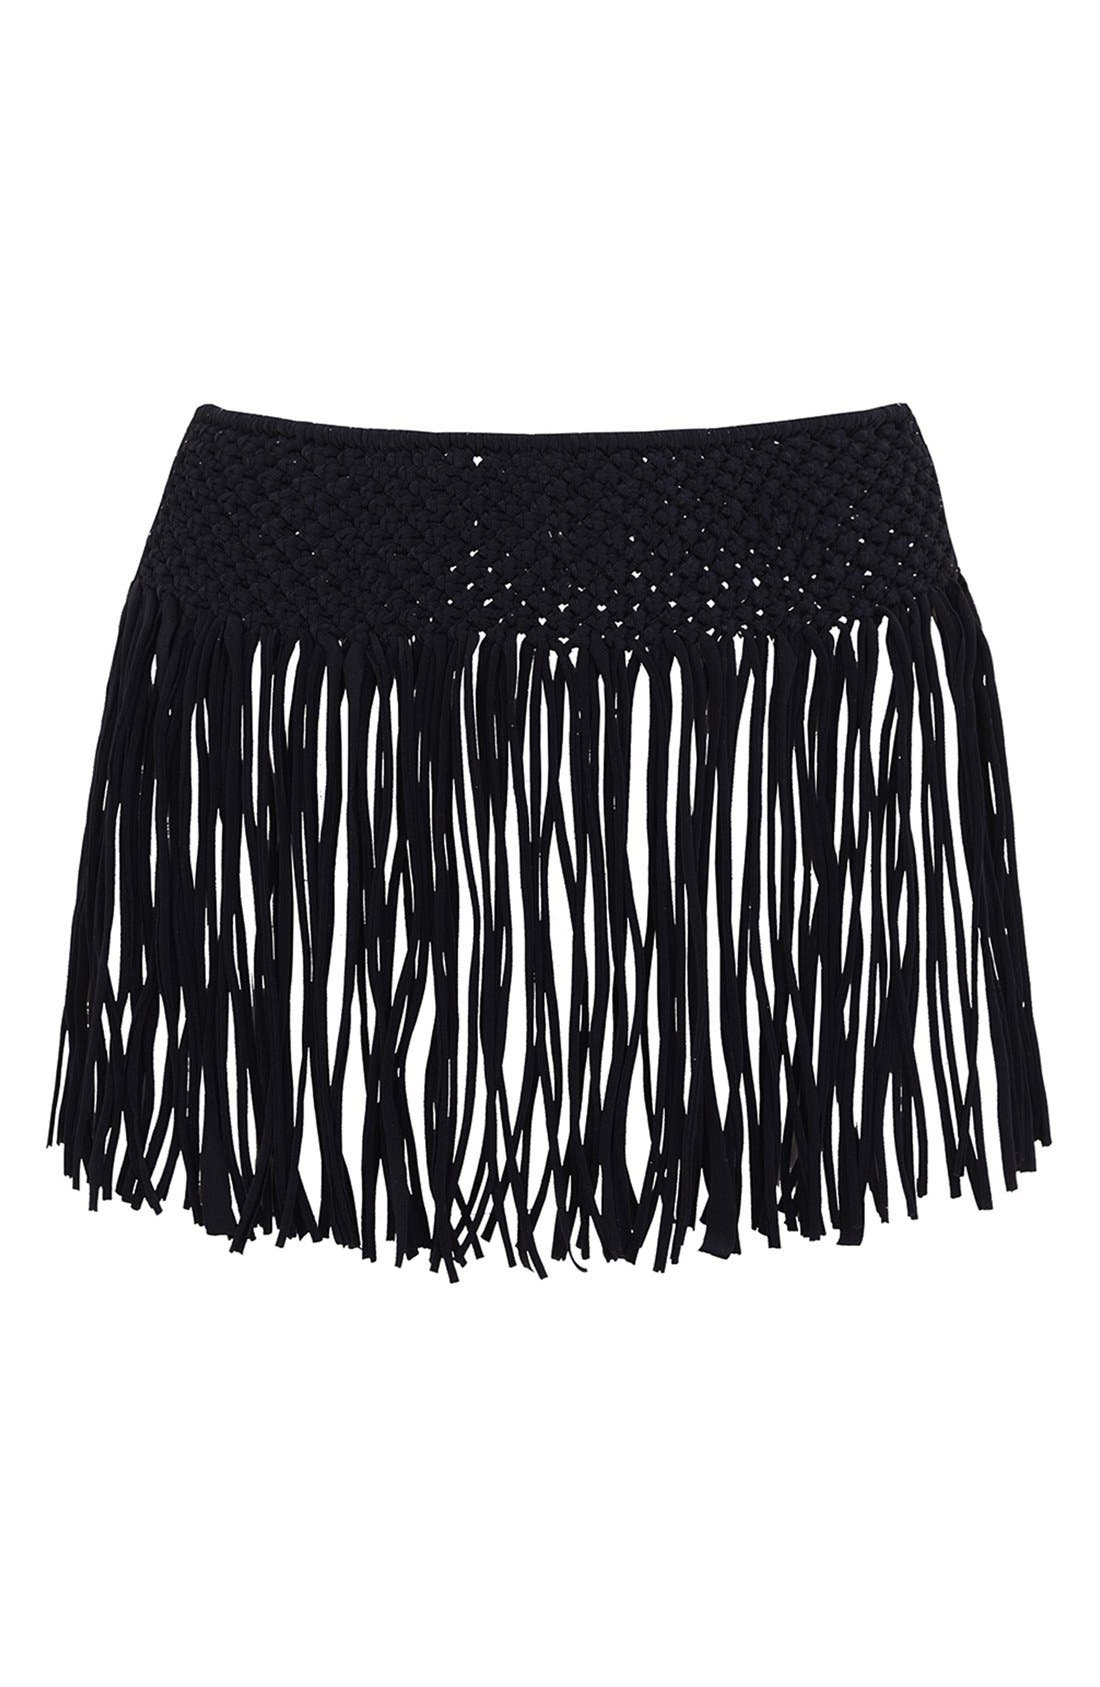 Alternate Image 1 Selected - KENDALL + KYLIE at Topshop Macramé Fringe Cover-Up Skirt